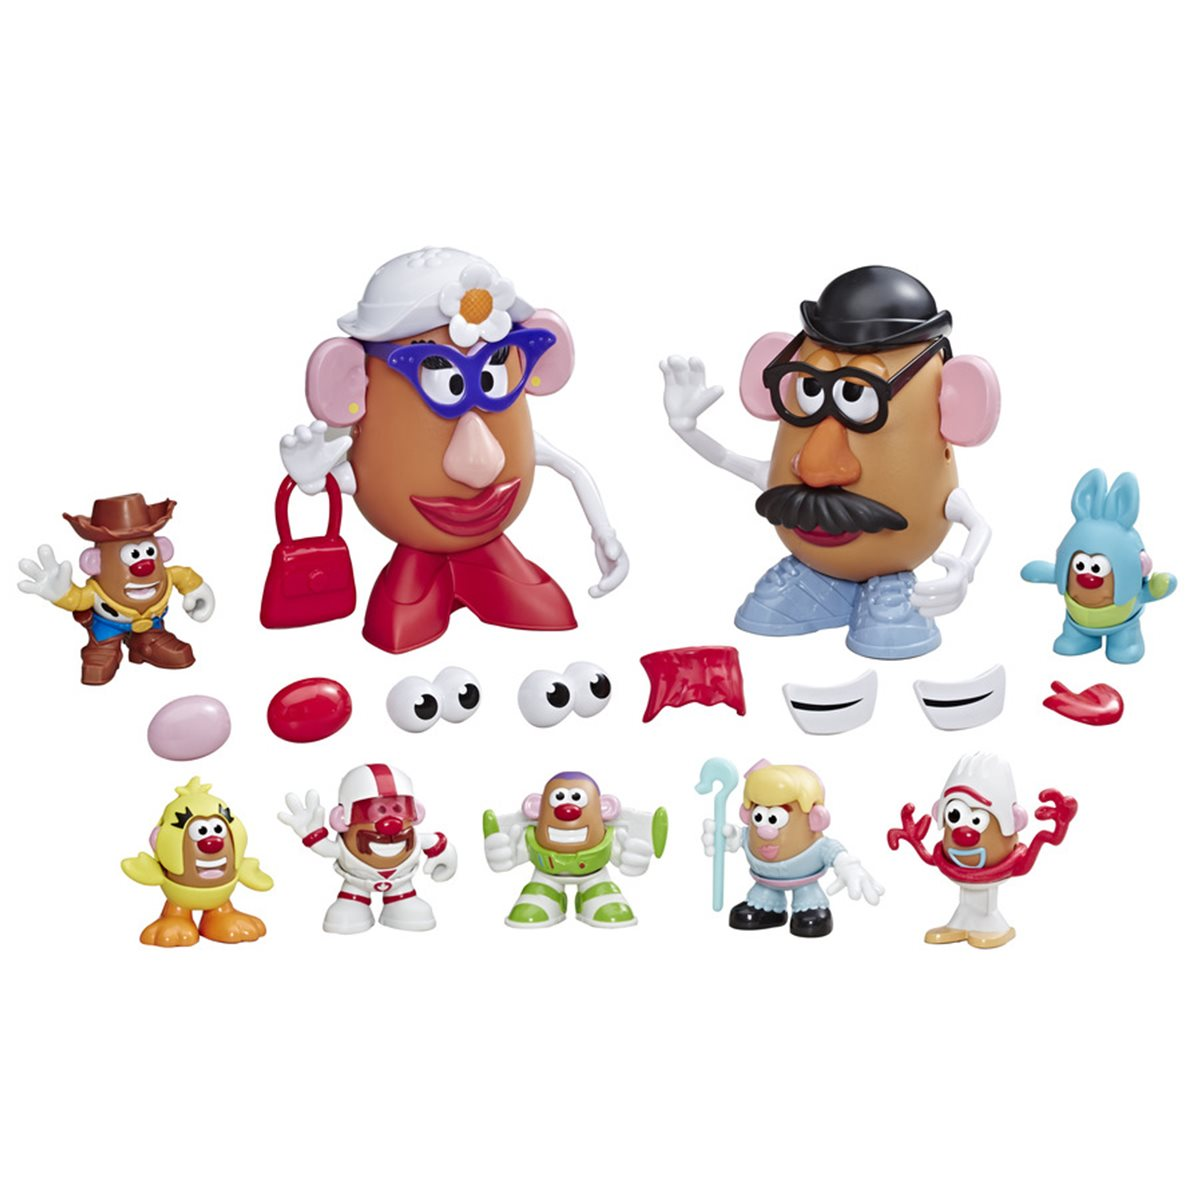 Toy Story 4 Andys Playroom Mr And Mrs Potato Head Pack